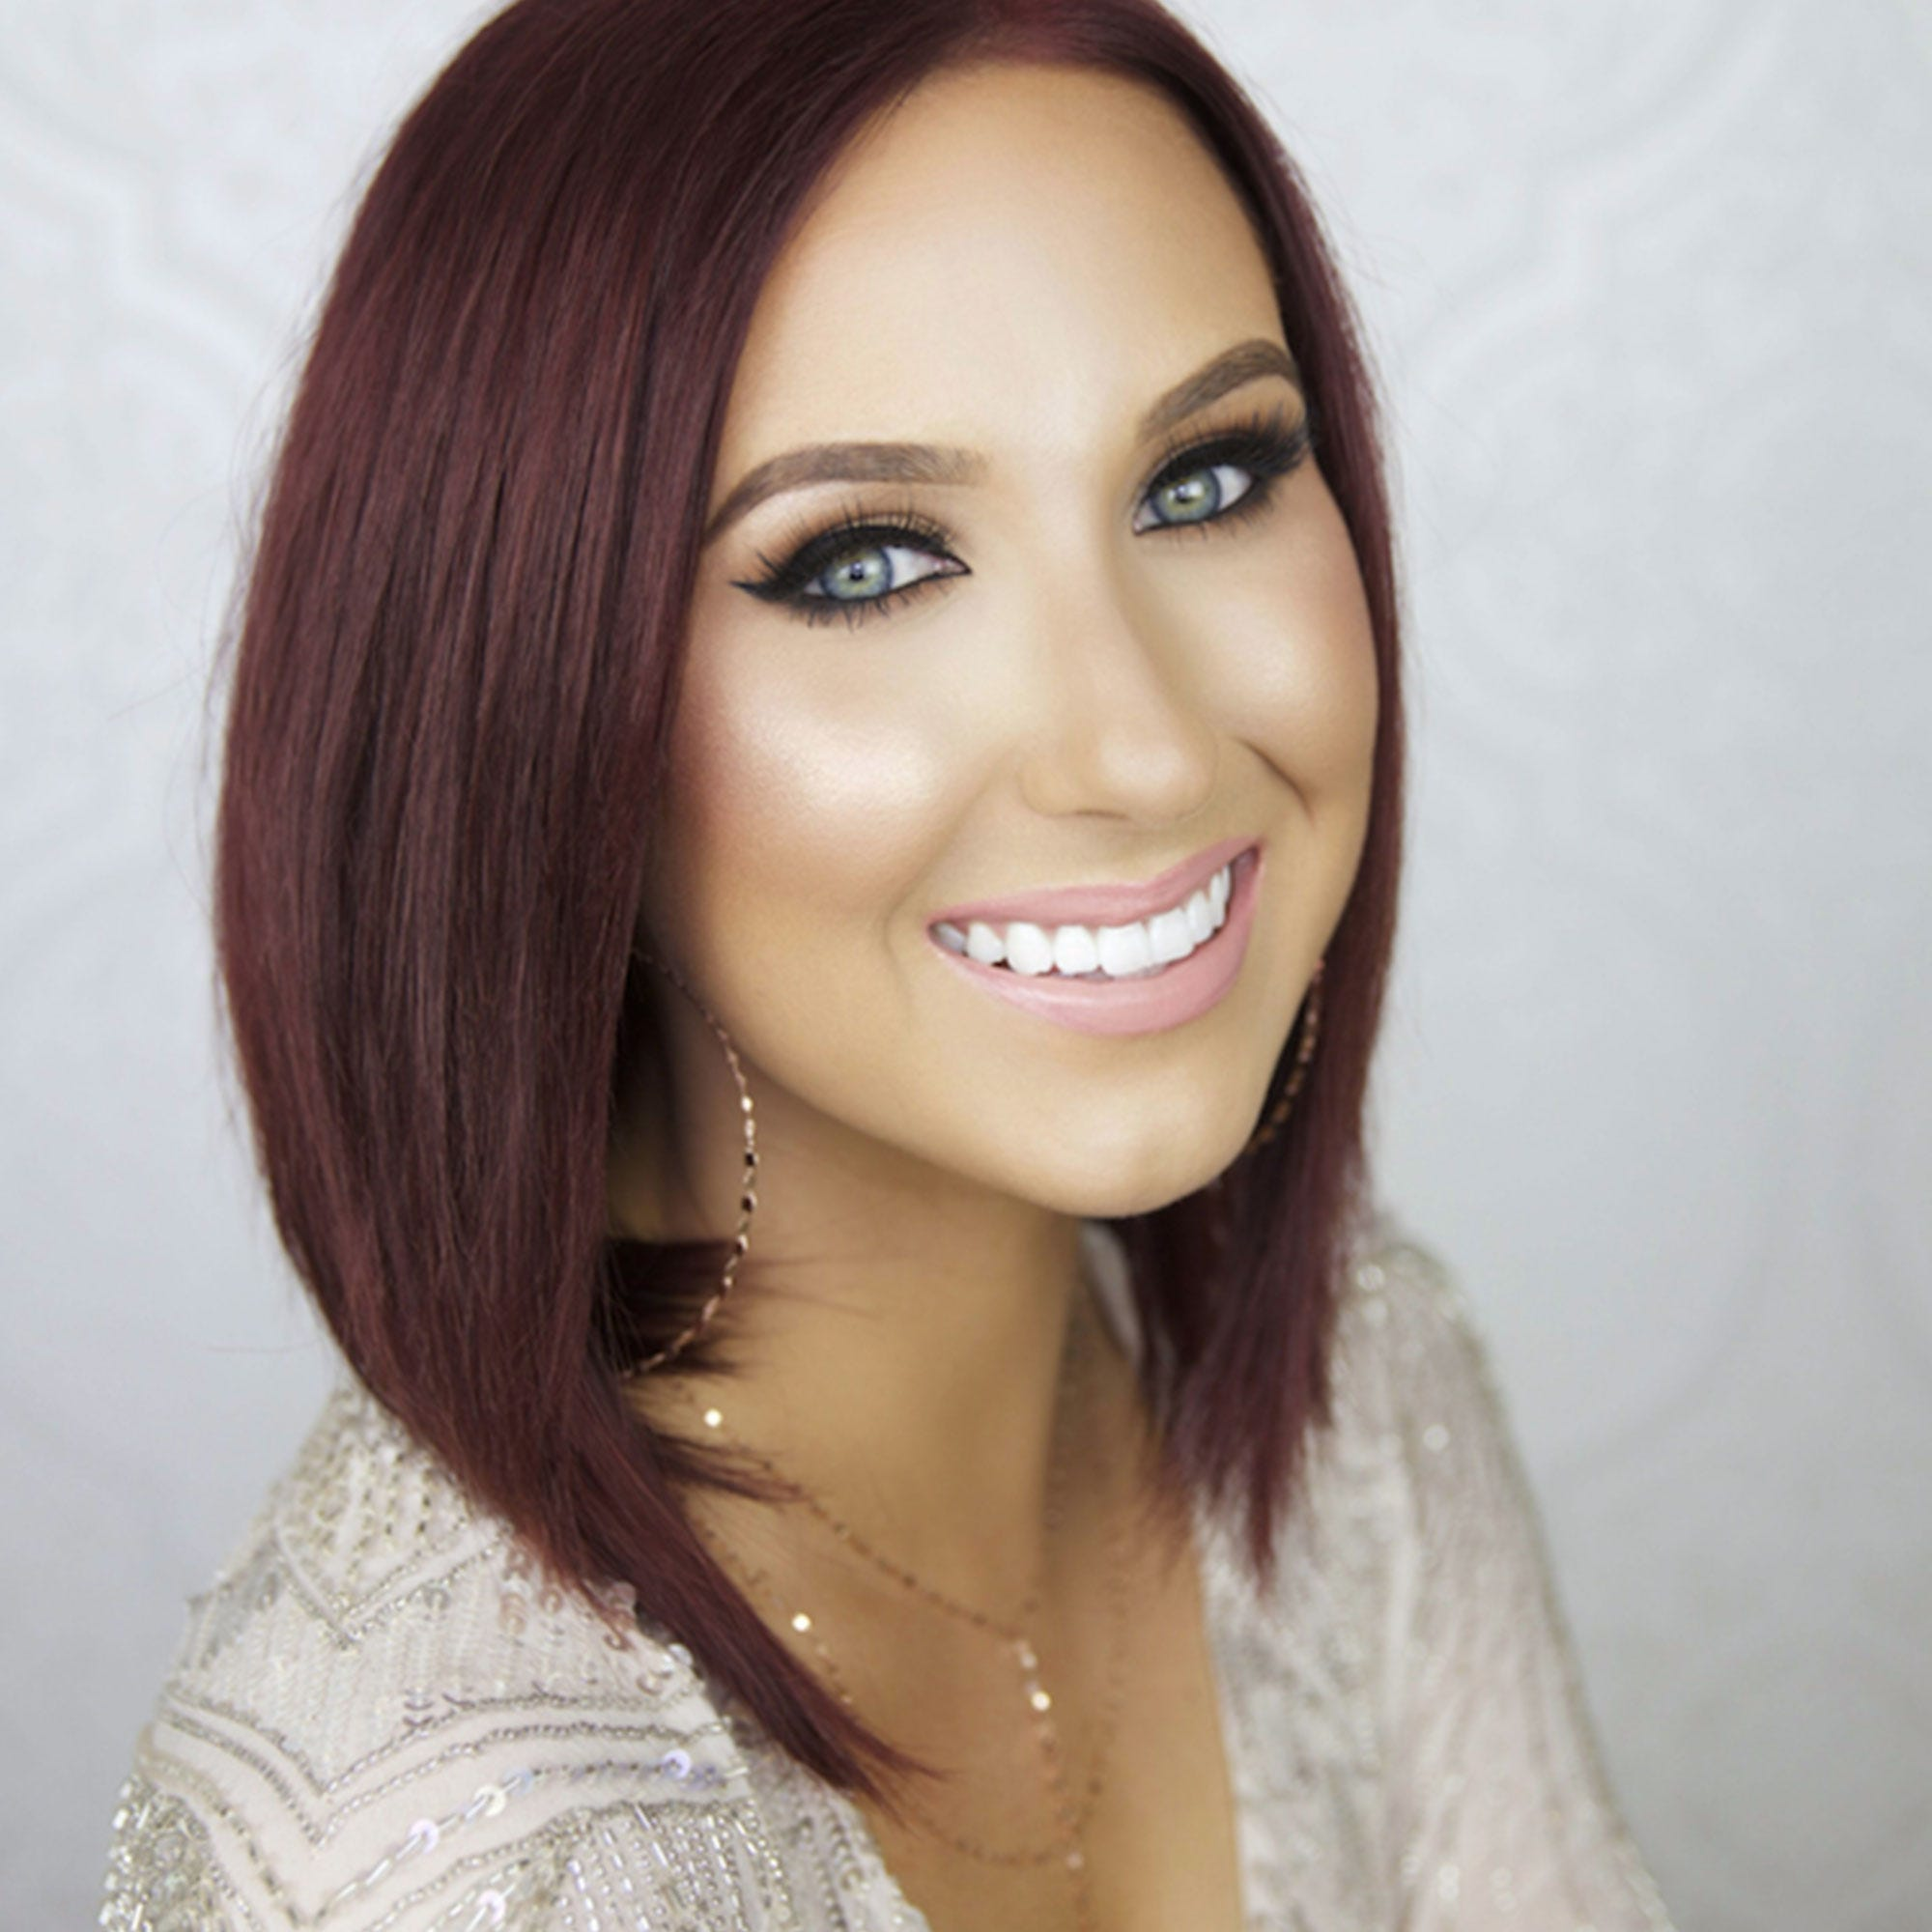 How Makeup Geek CEO Marlena Stell Built a 10M Business on